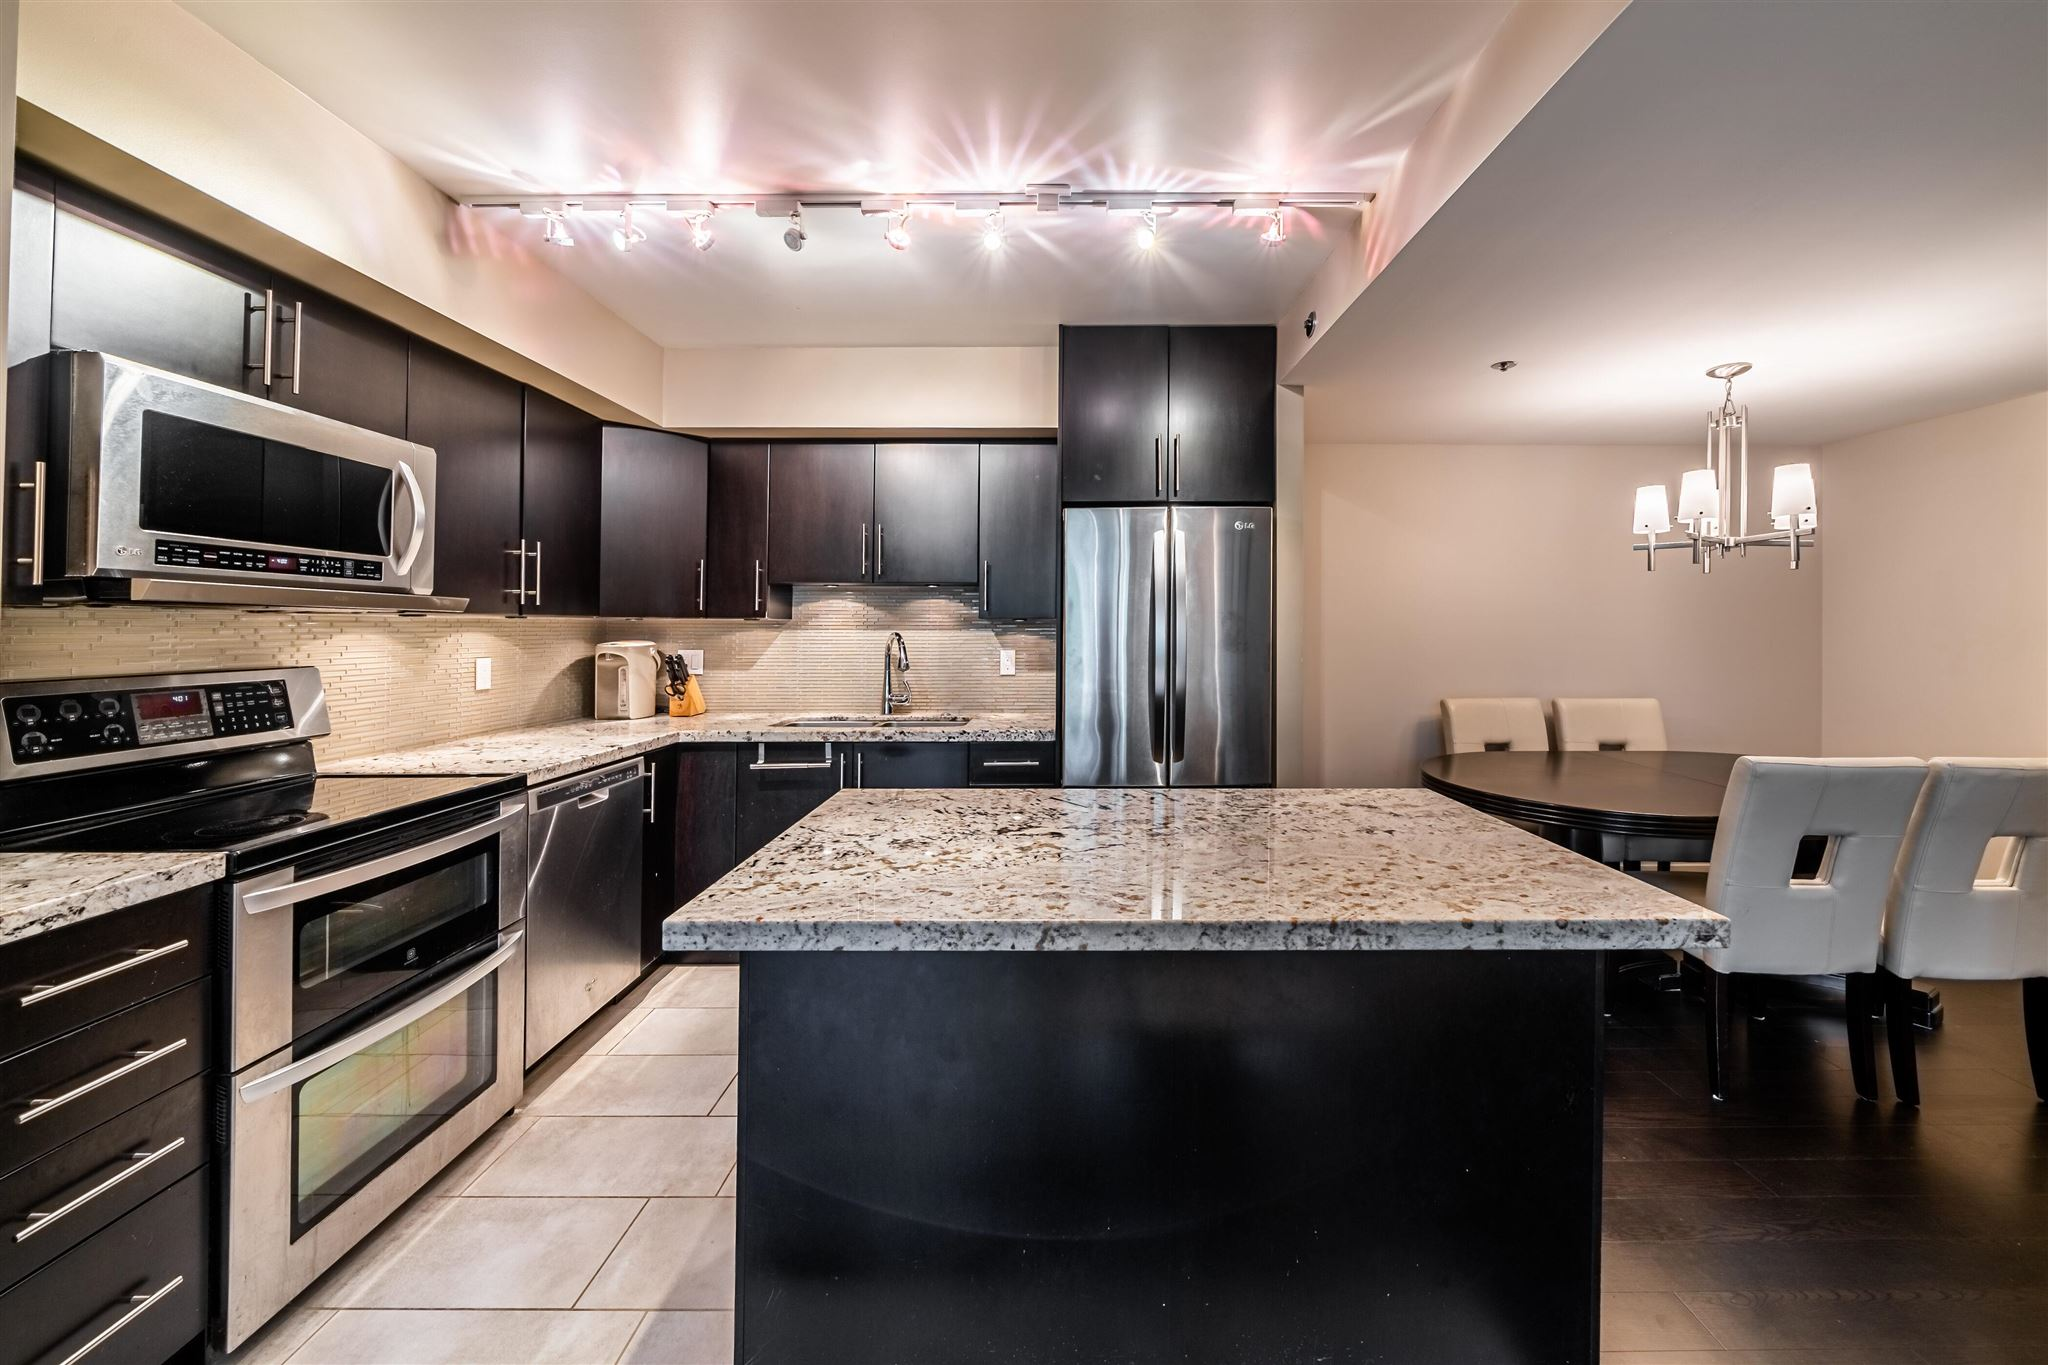 302 2201 PINE STREET - Fairview VW Apartment/Condo for sale, 2 Bedrooms (R2594964)